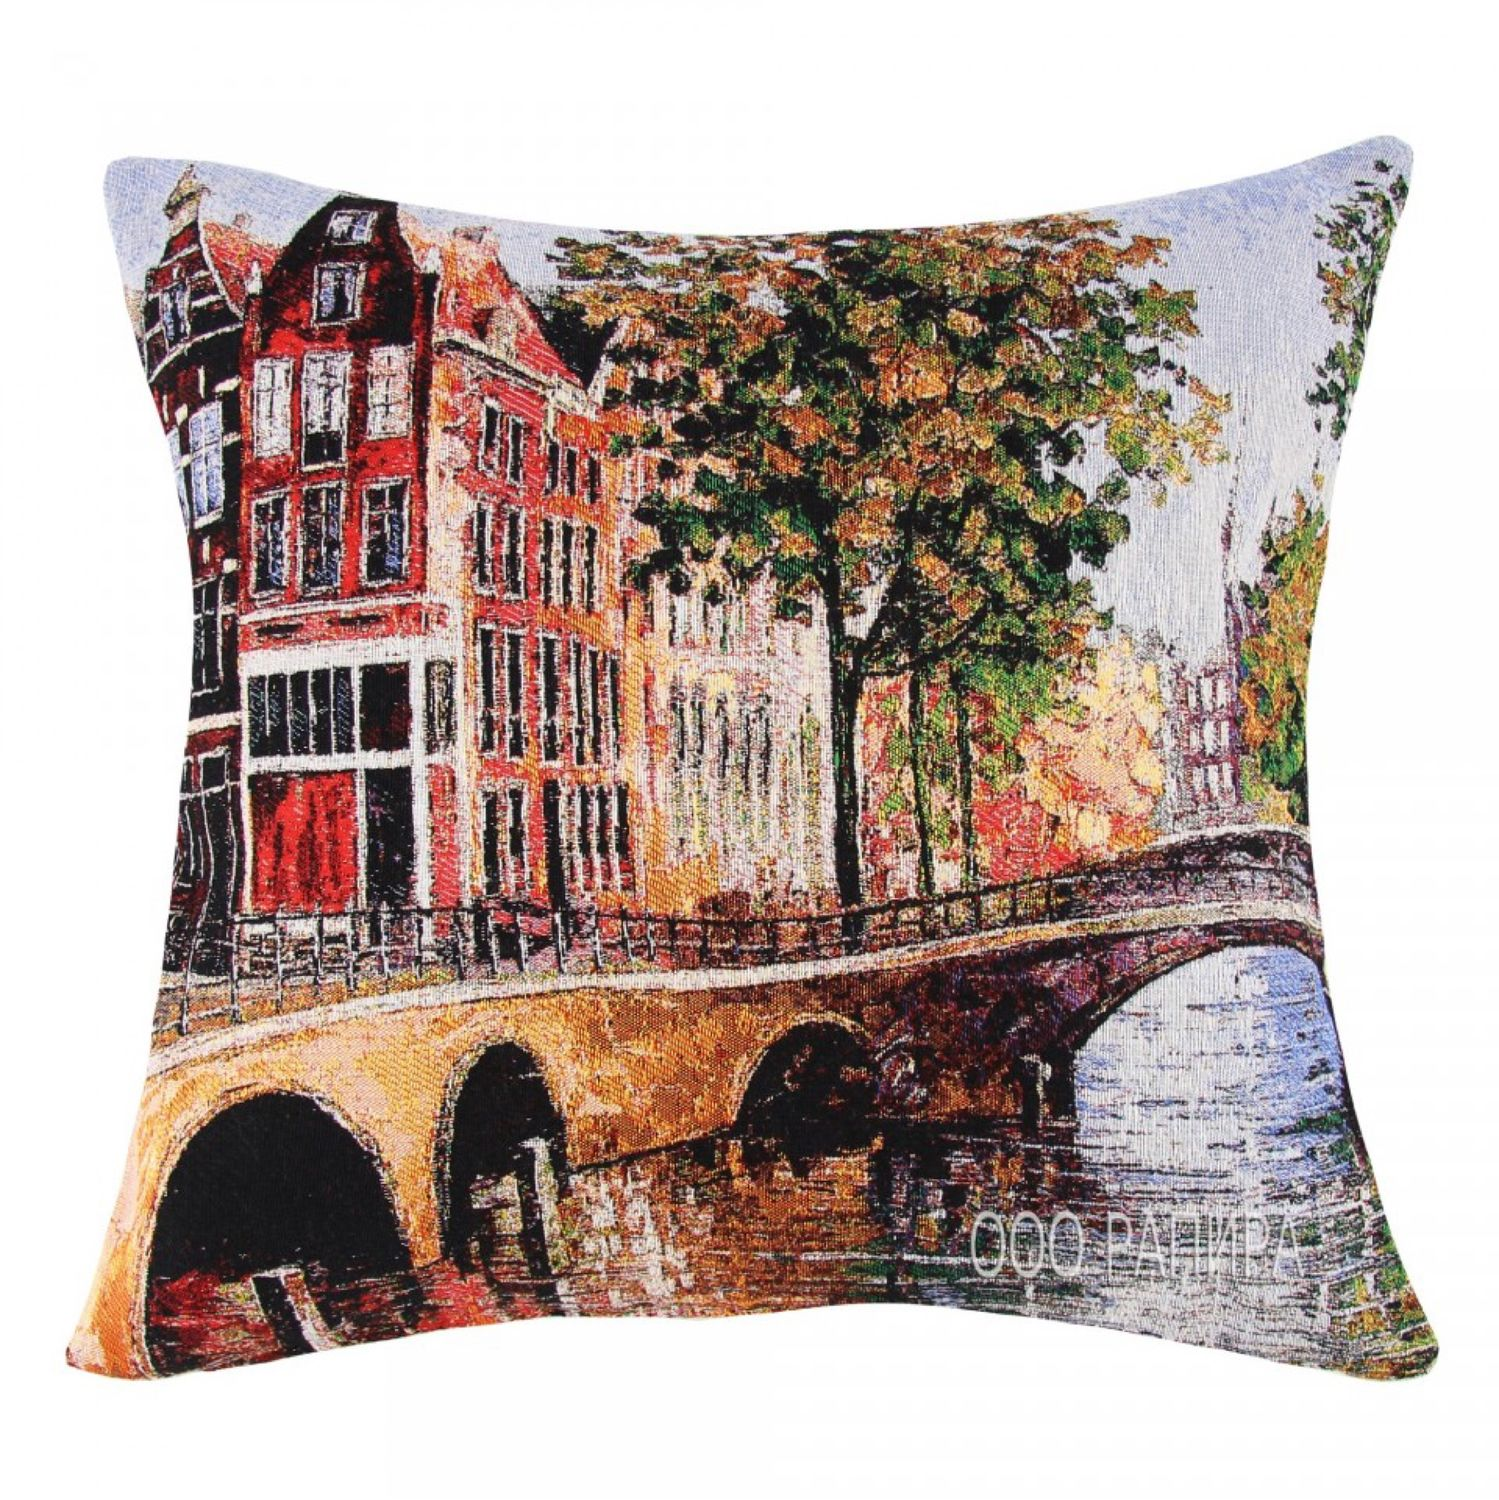 Decorative pillowcases in assortment 43h43 cm tapestry, Pillowcases, Moscow,  Фото №1